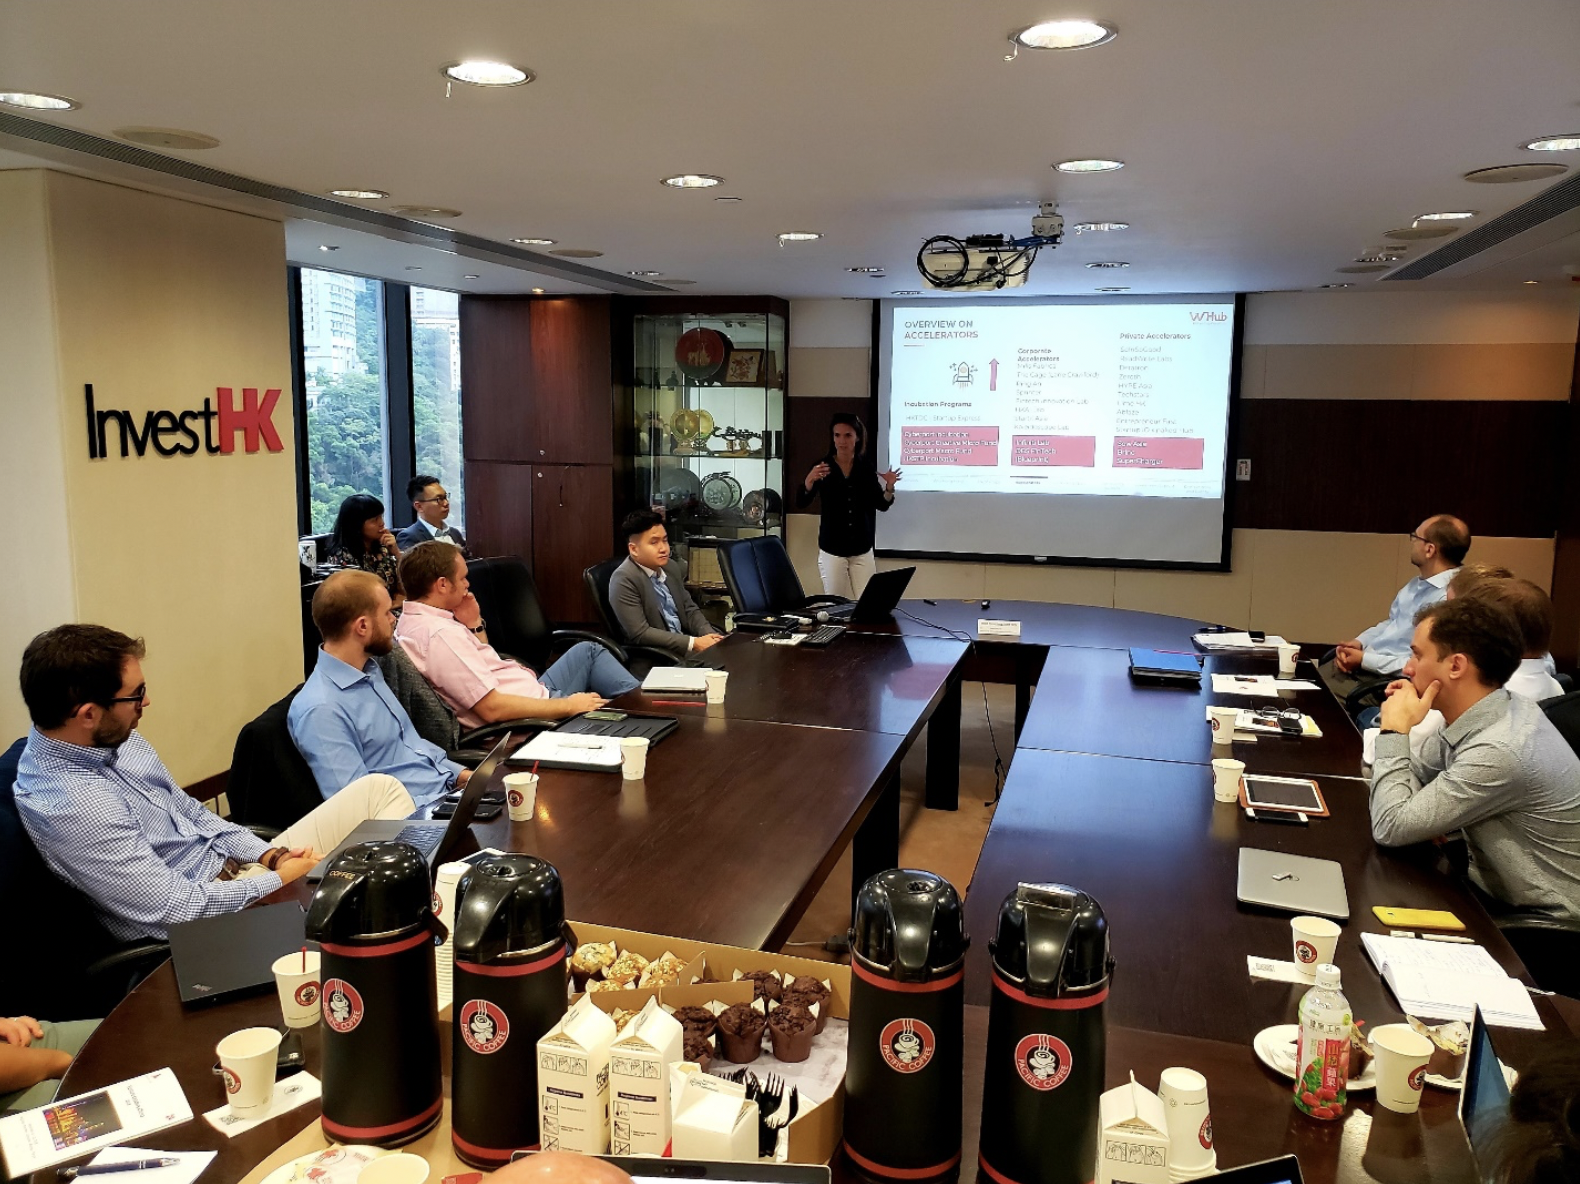 Kick off of the Venture Leaders program at Invest HK, in Hong Kong